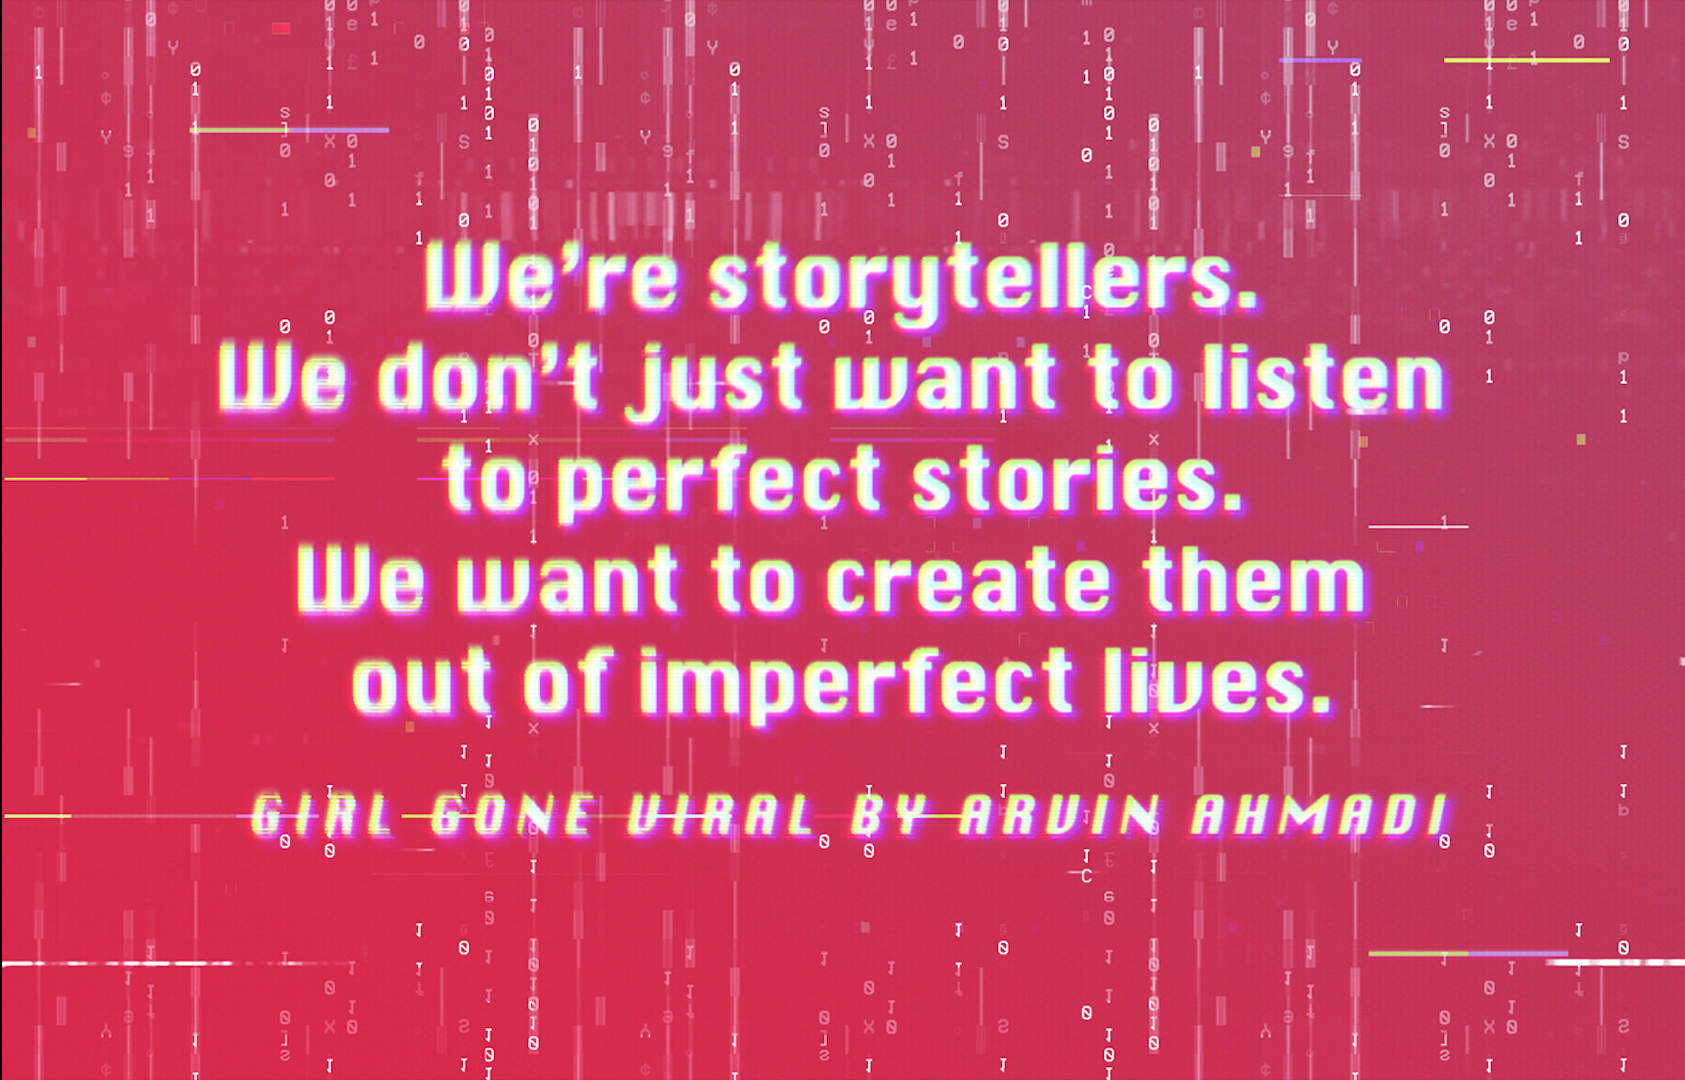 We're storytellers - Girl Gone Viral by Arvin Ahmadi